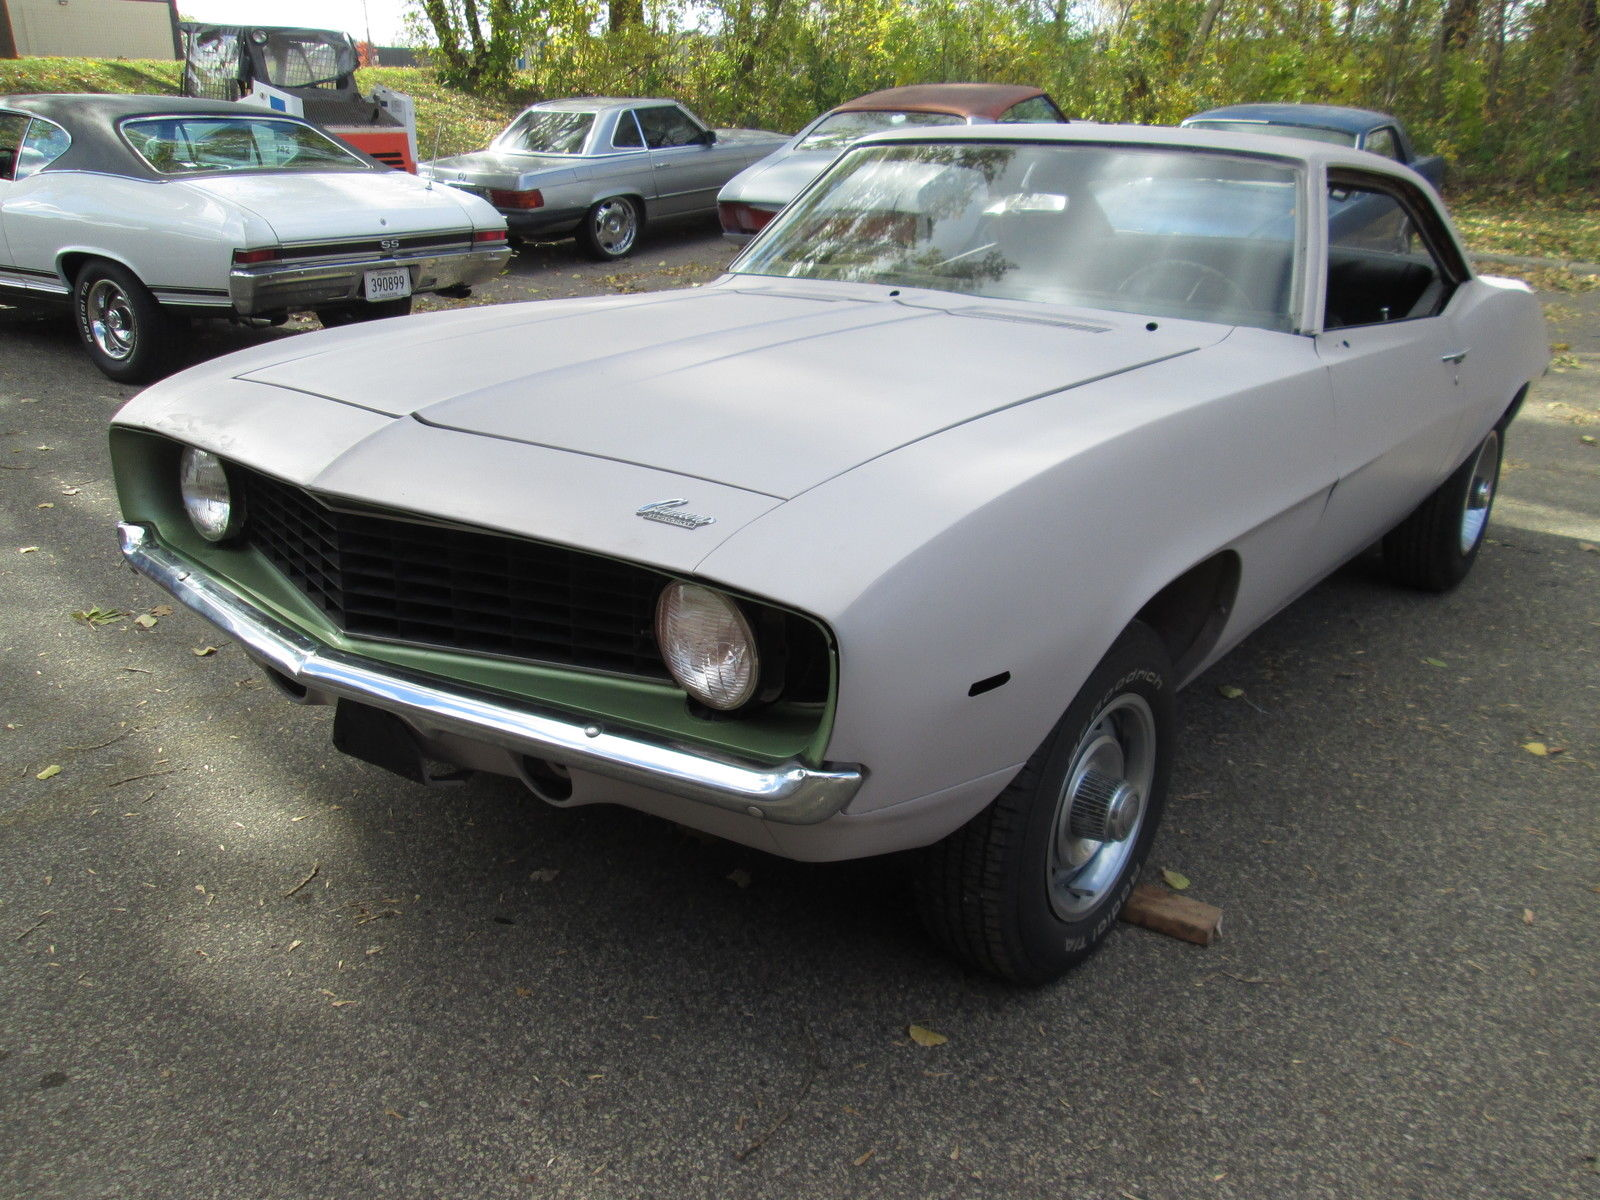 1969 Camaro Project - Project Cars For Sale